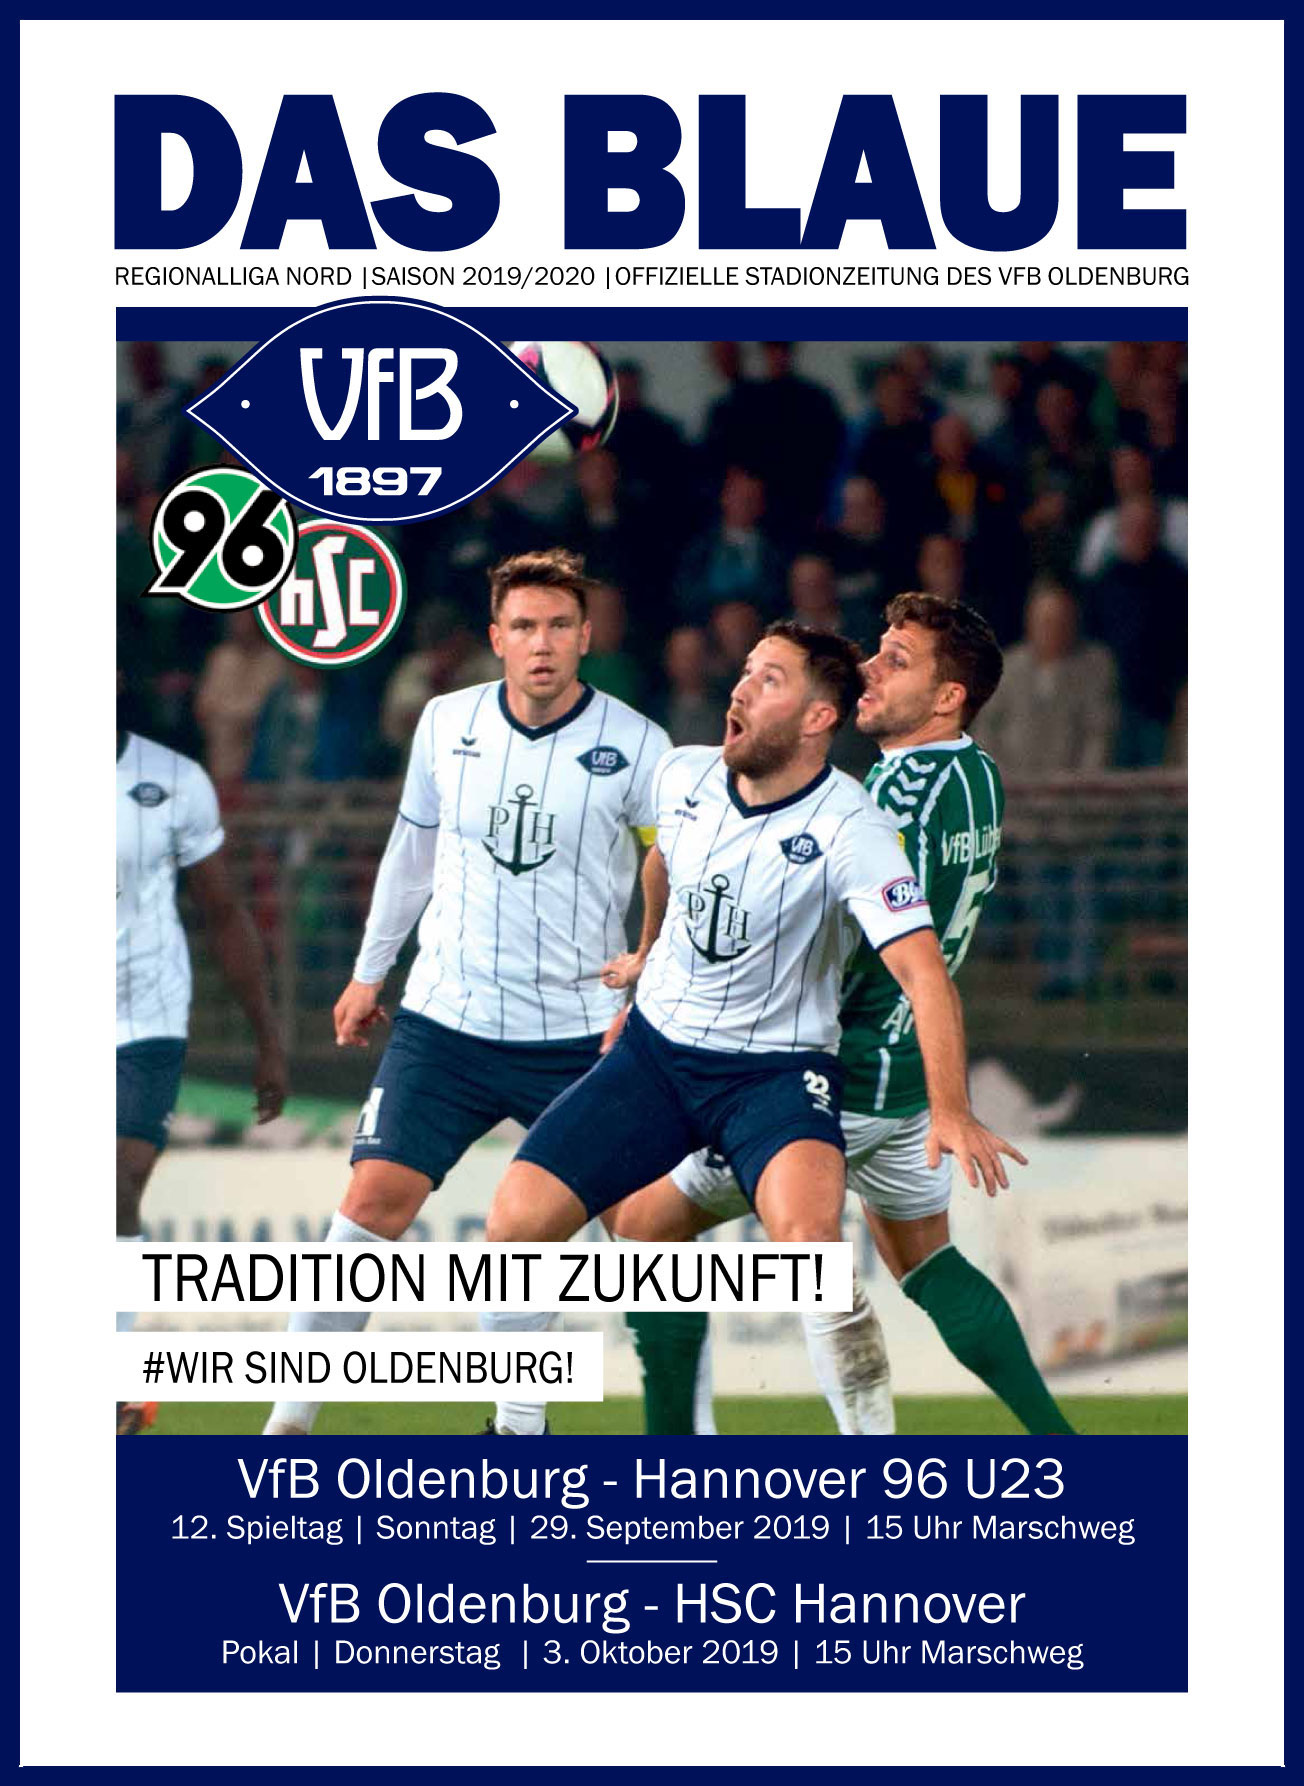 https://vfb-oldenburg.de/wp-content/uploads/VFB_Oldenburg_12_Spieltag_2019_2020.jpg